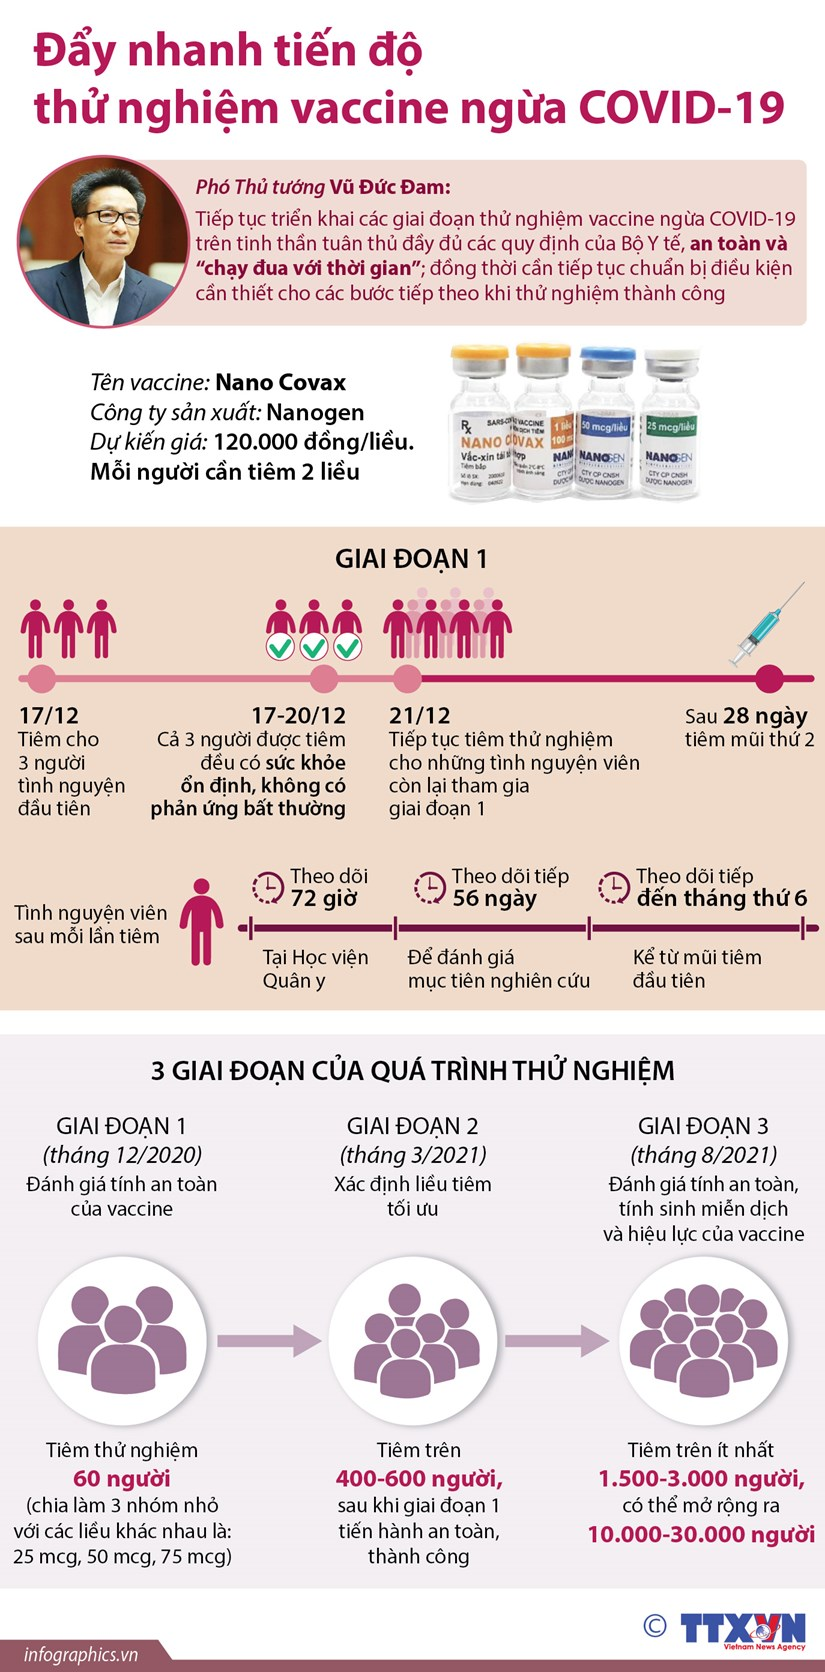 [Infographics] Day nhanh tien do thu nghiem vacxin ngua COVID-19 hinh anh 1